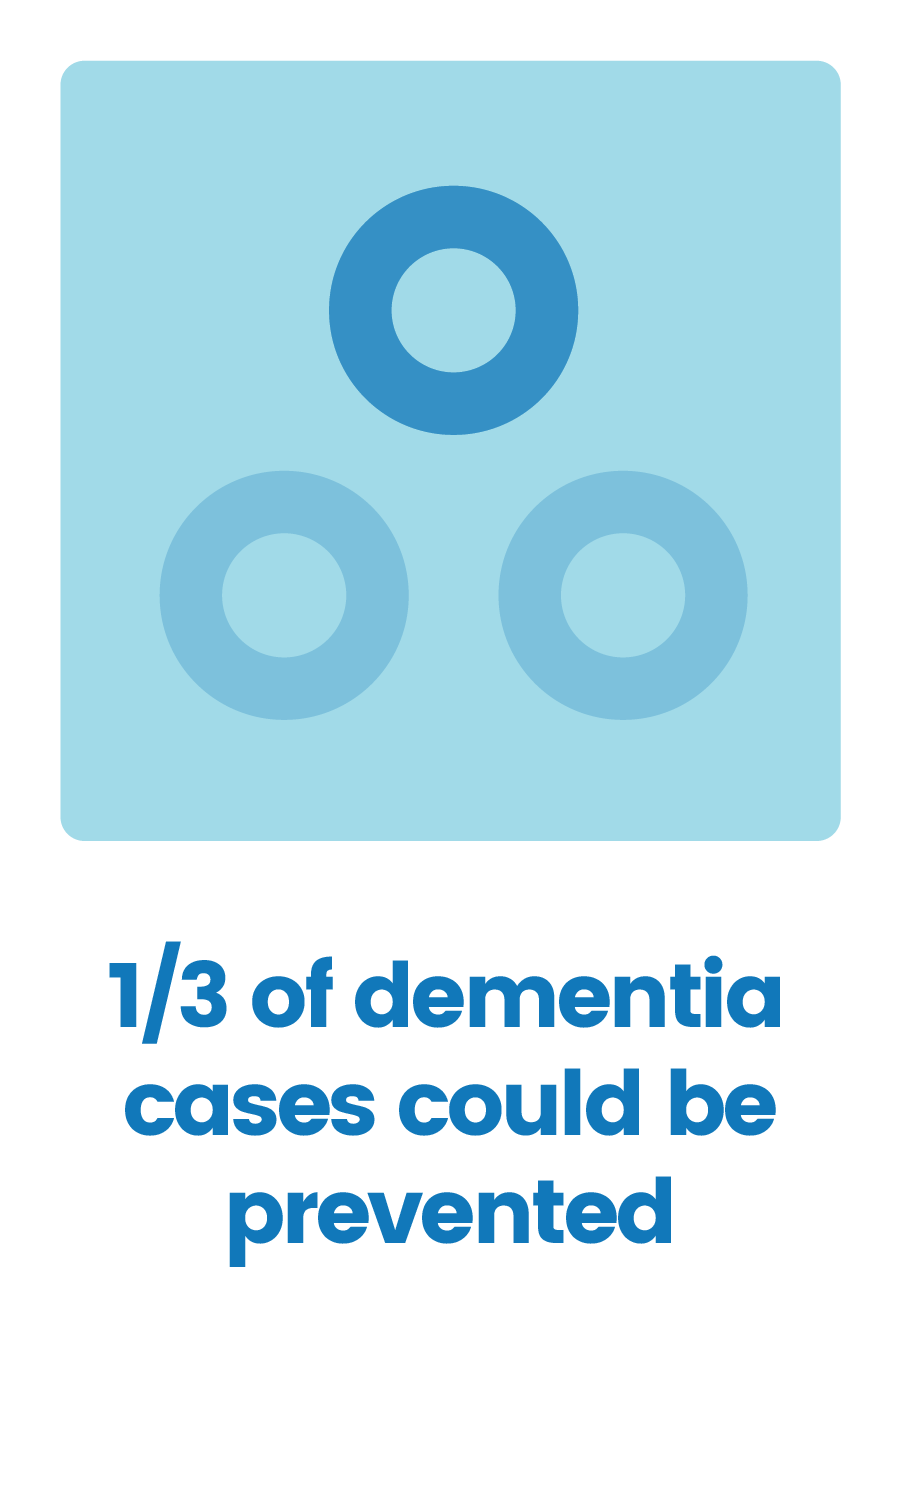 1/3 Dementia Cases Prevented